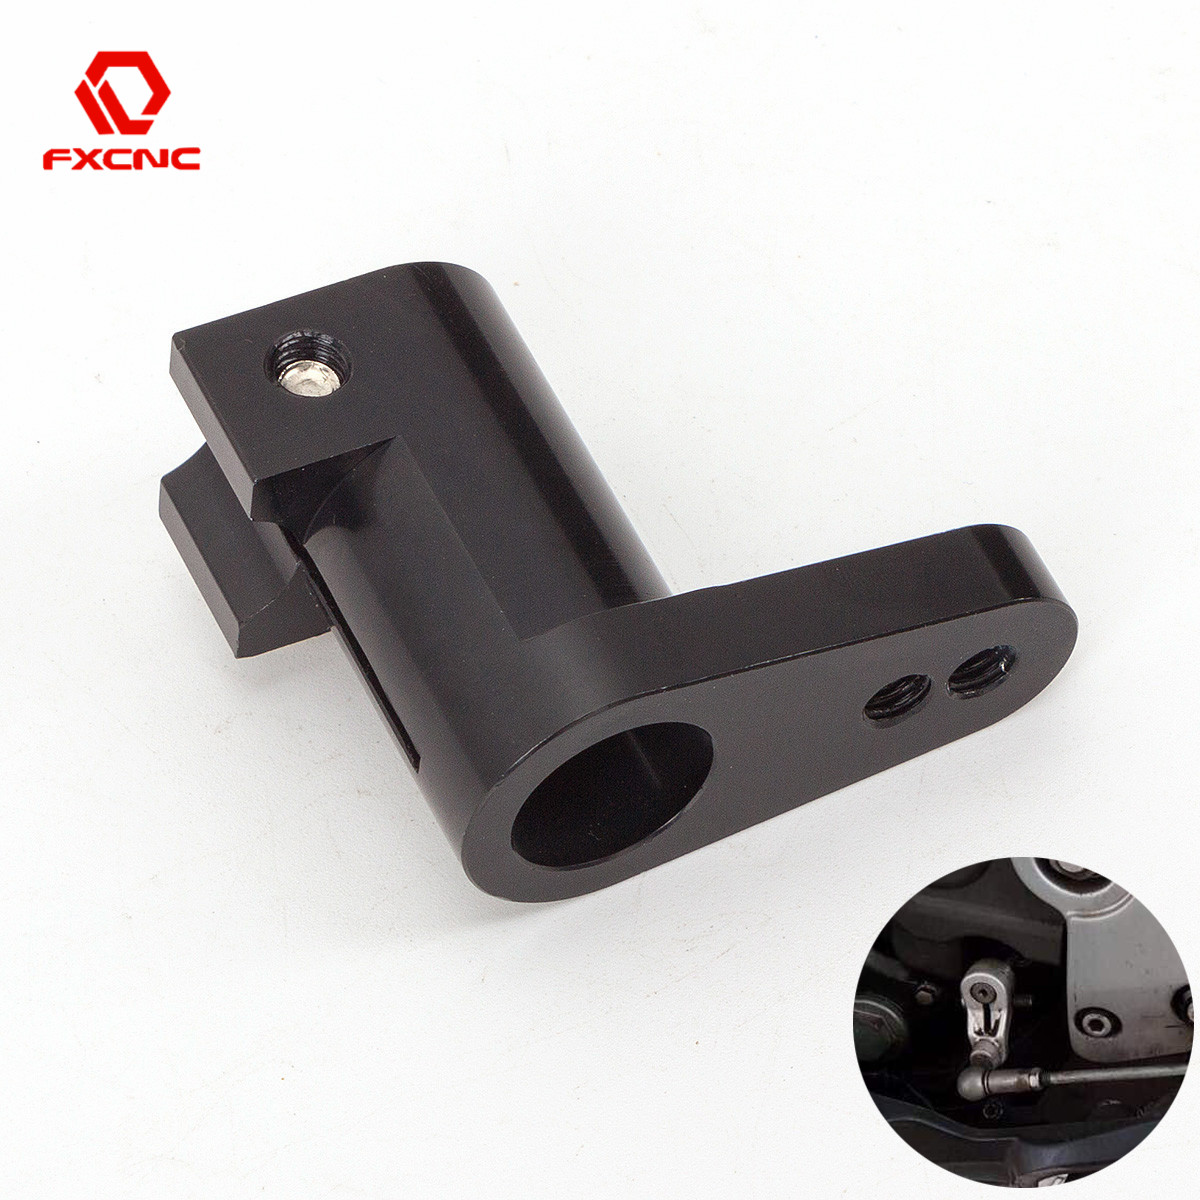 Motorcycle Foot Peg <font><b>Rearset</b></font> Gear Shift Shifter Arm Rod Adapter For Honda CBR300RR CBR600RR CBR1000RR GROM <font><b>MSX125</b></font> NSF 100 NSR50 image